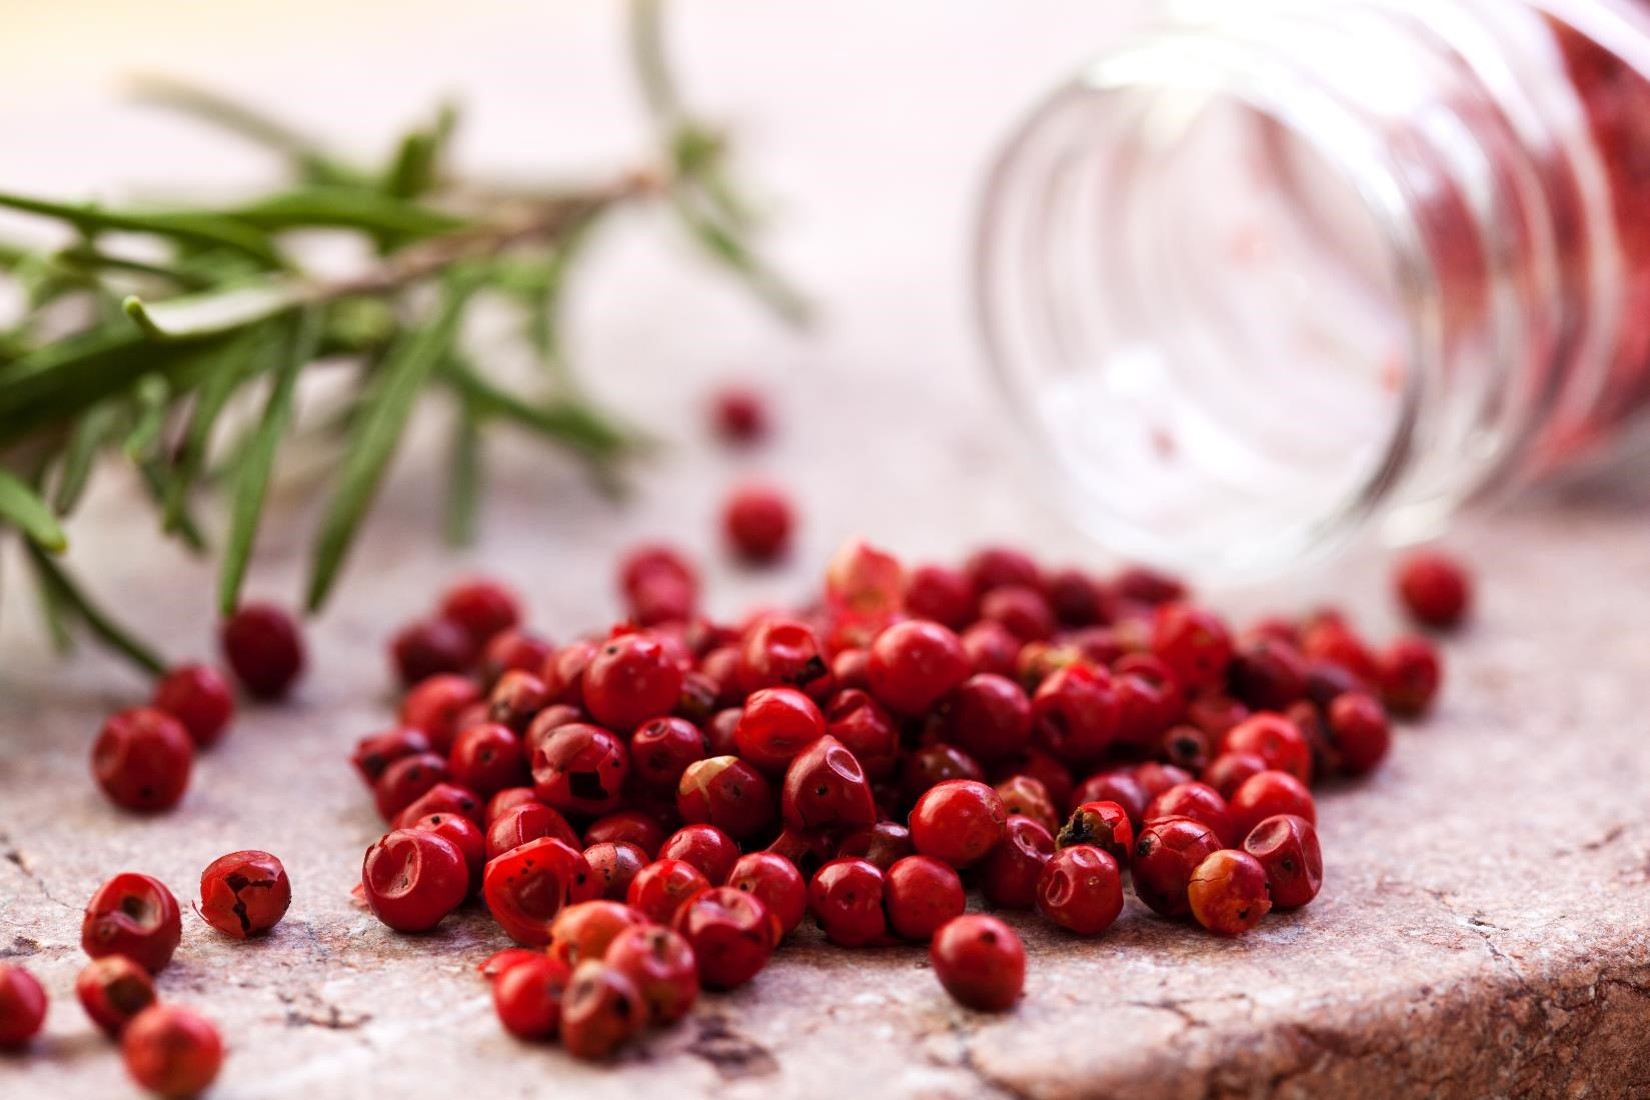 FIND OUT MORE ABOUT PINK BERRIES